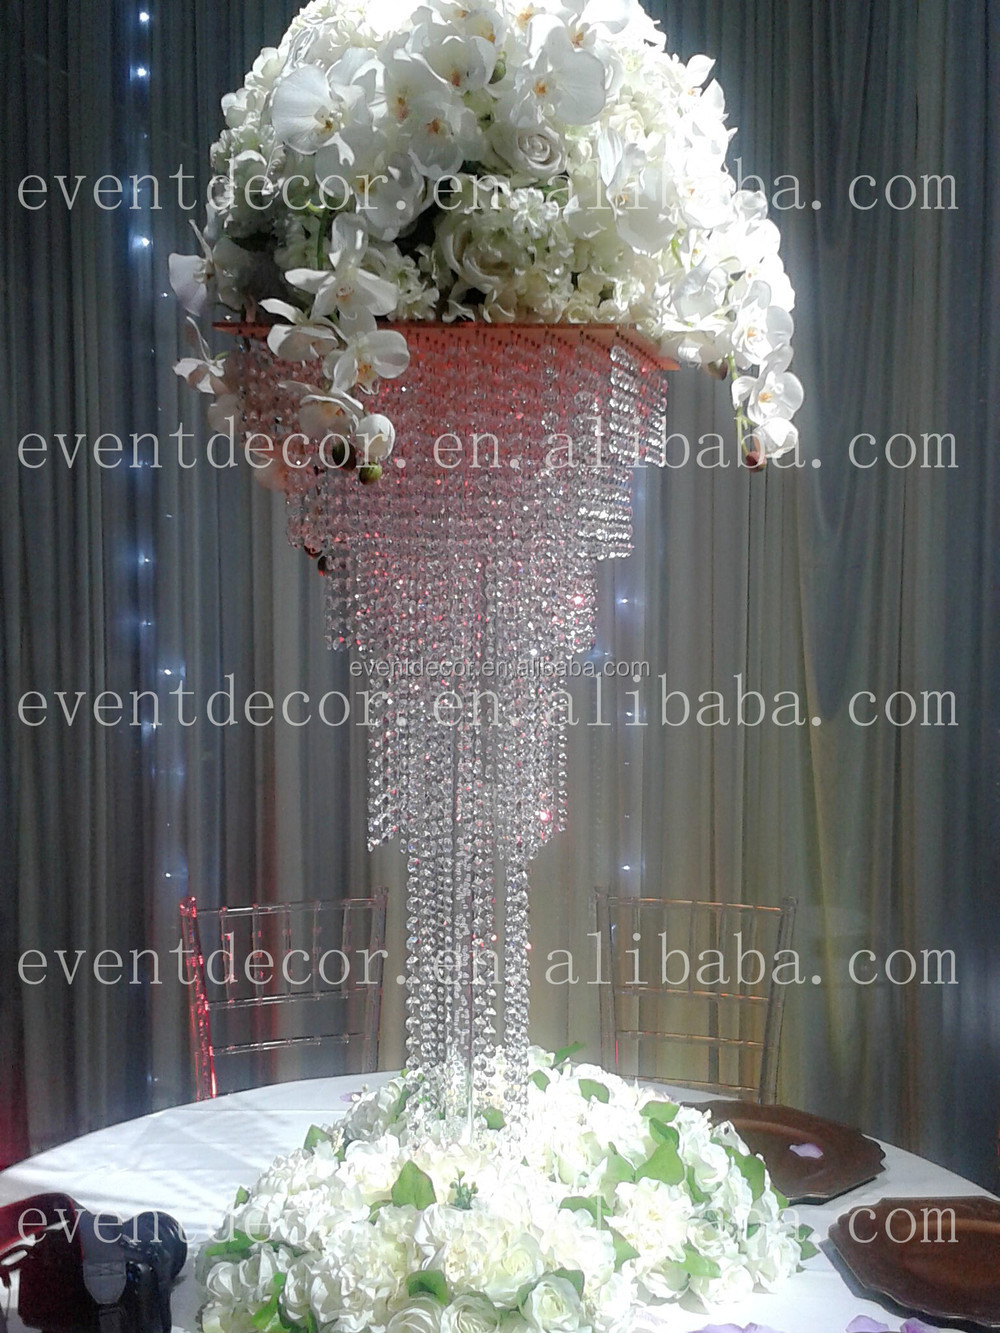 Shining crystal centerpieces for wedding table decorationsquare shining crystal centerpieces for wedding table decoration square wedding chandelier centerpieces aloadofball Image collections